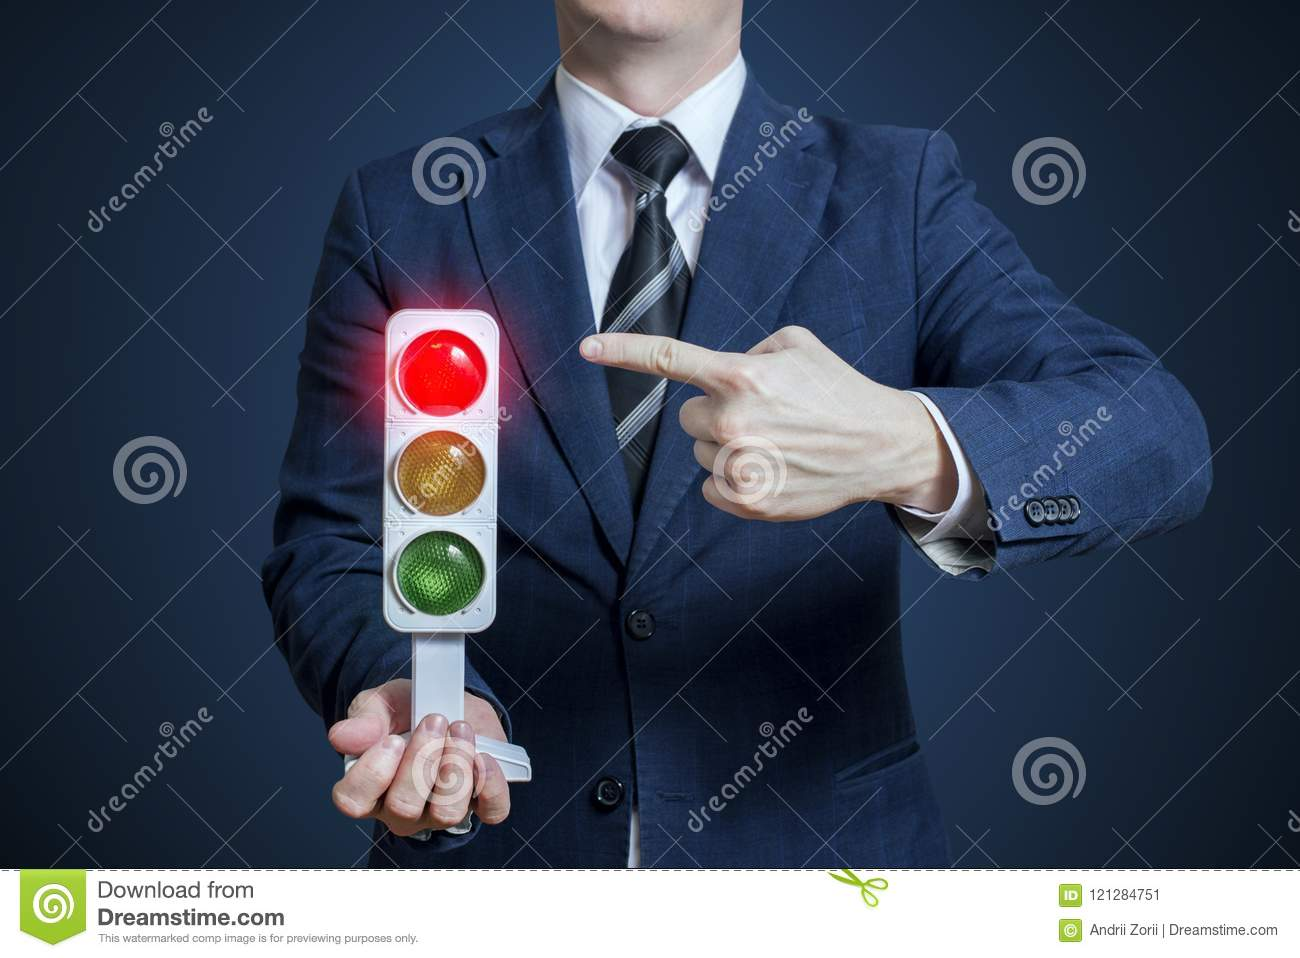 Businessman holding a traffic light with red light on.